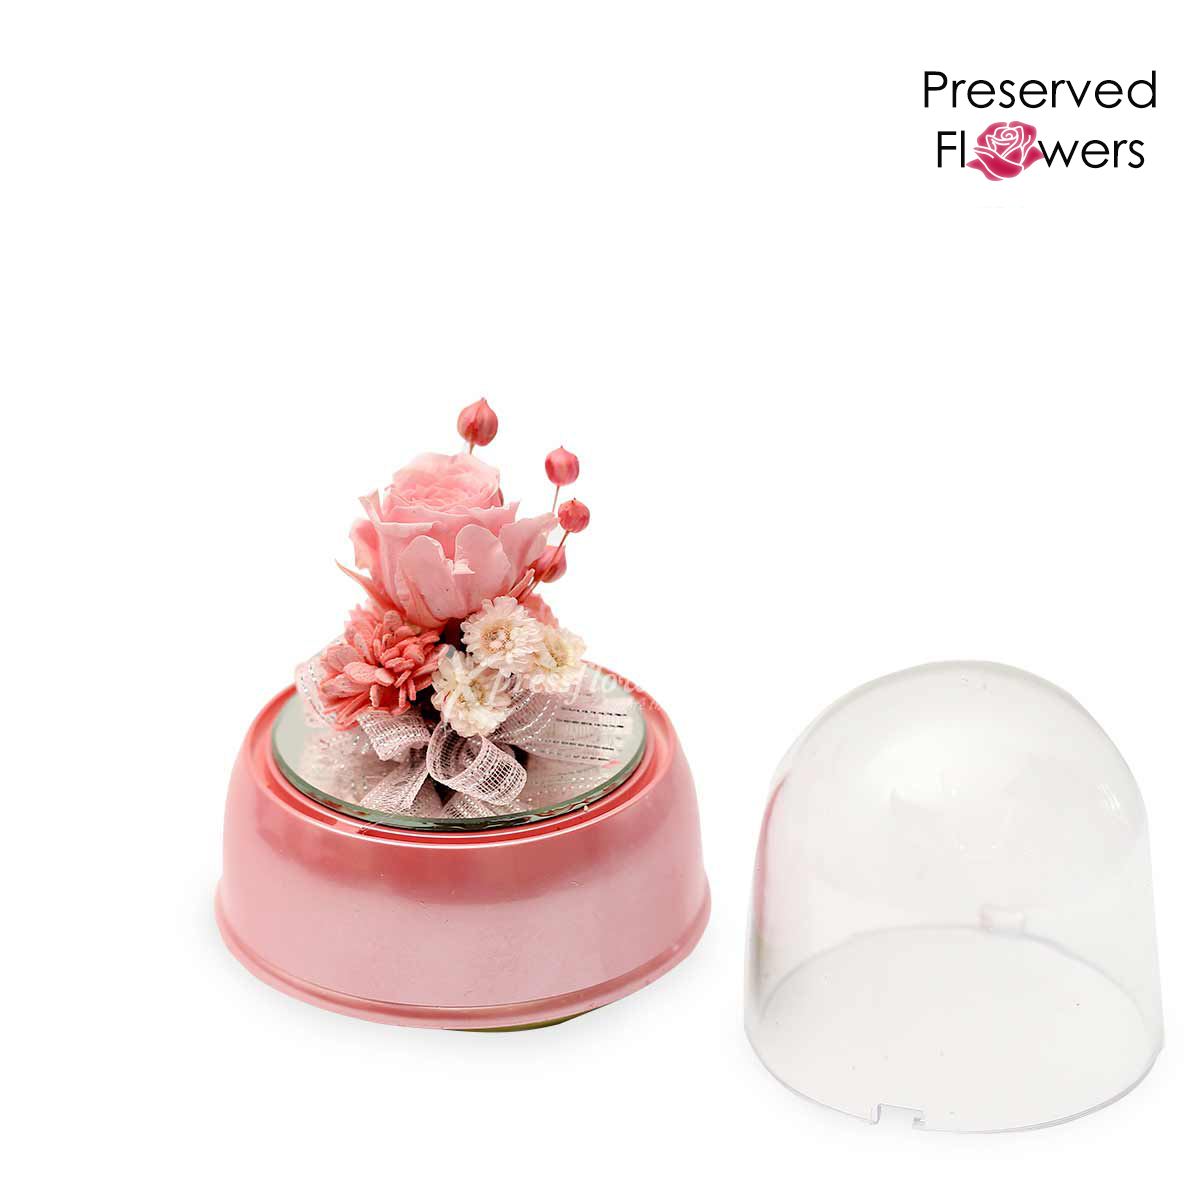 PR1907 Blushing Charms Preserved Flower